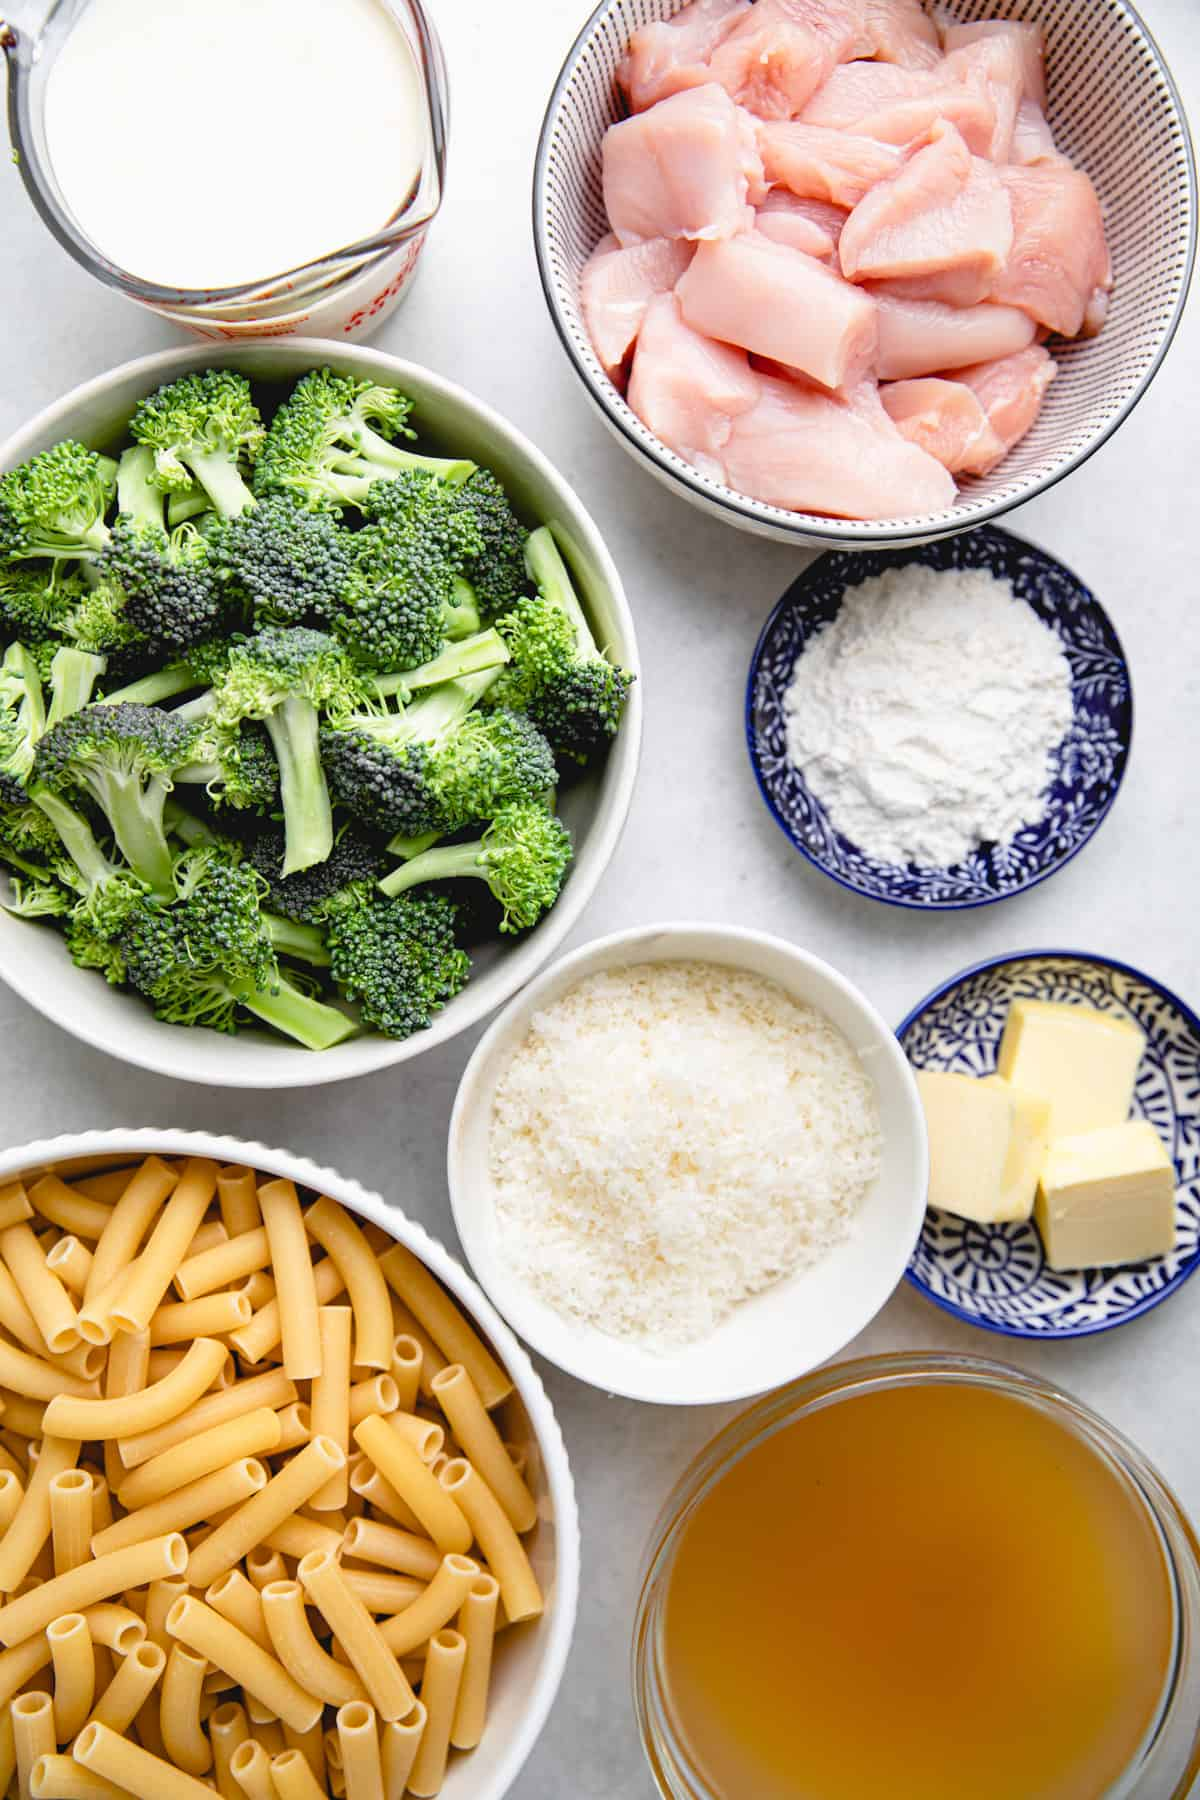 Ingredients for chicken broccoli ziti in separate bowls.